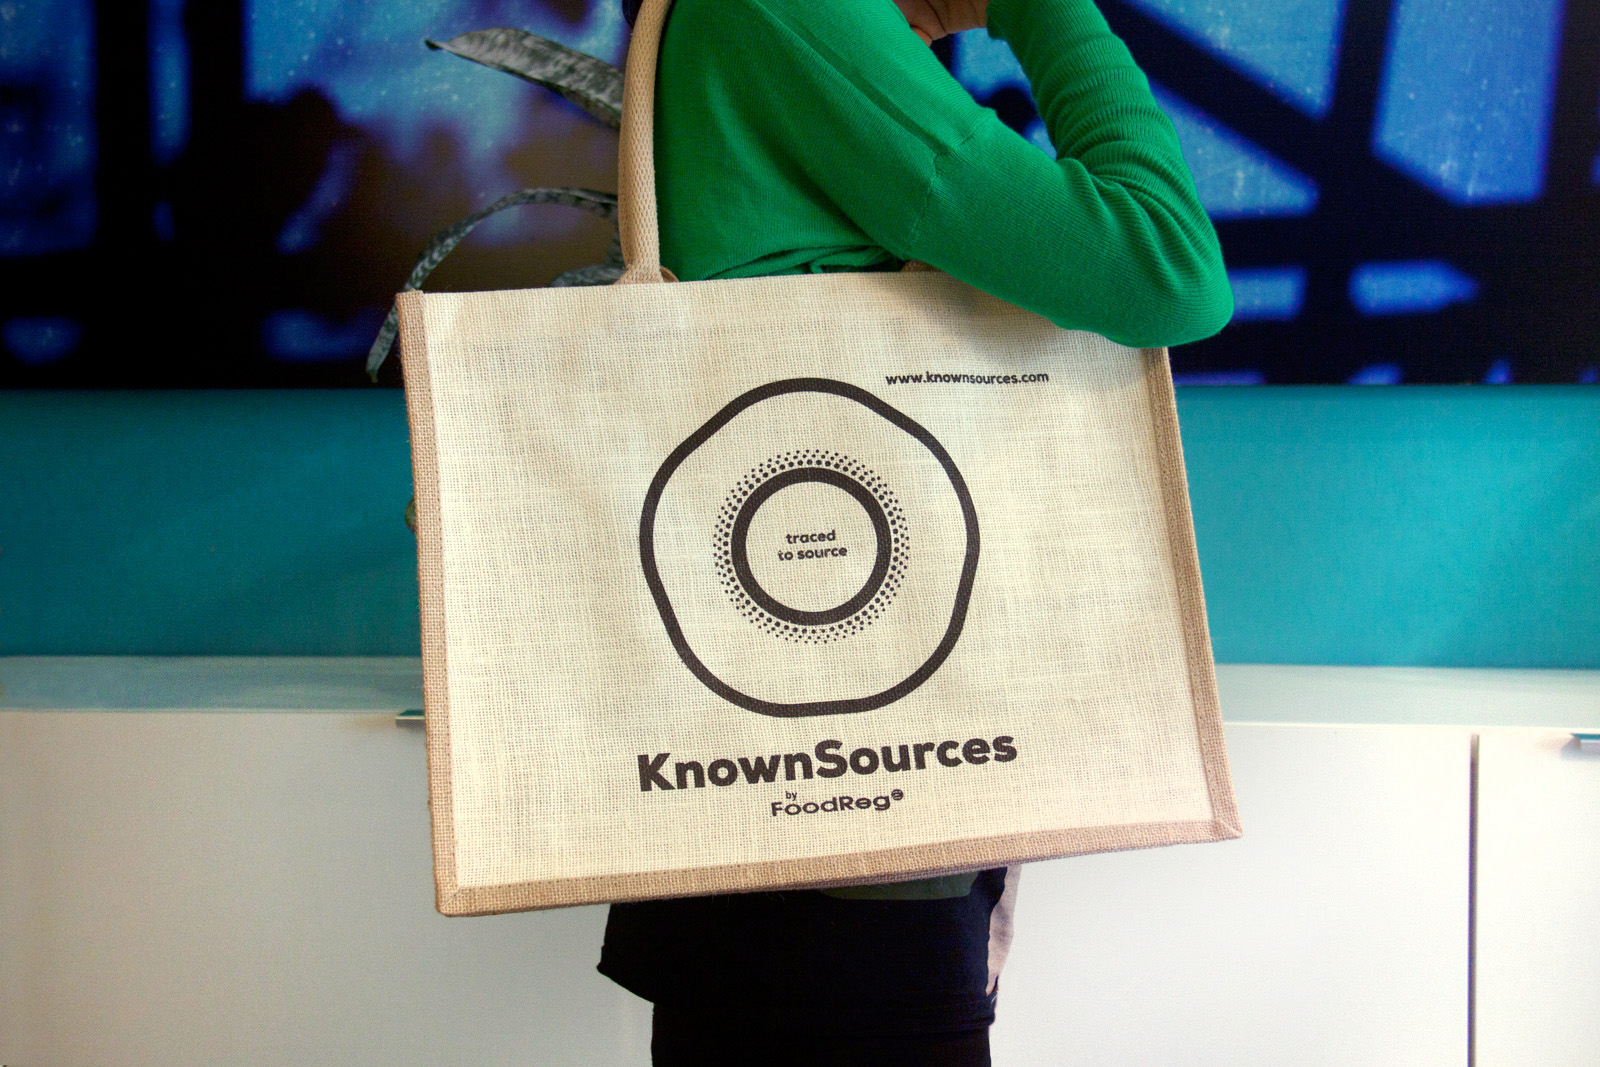 knownsources jute bag